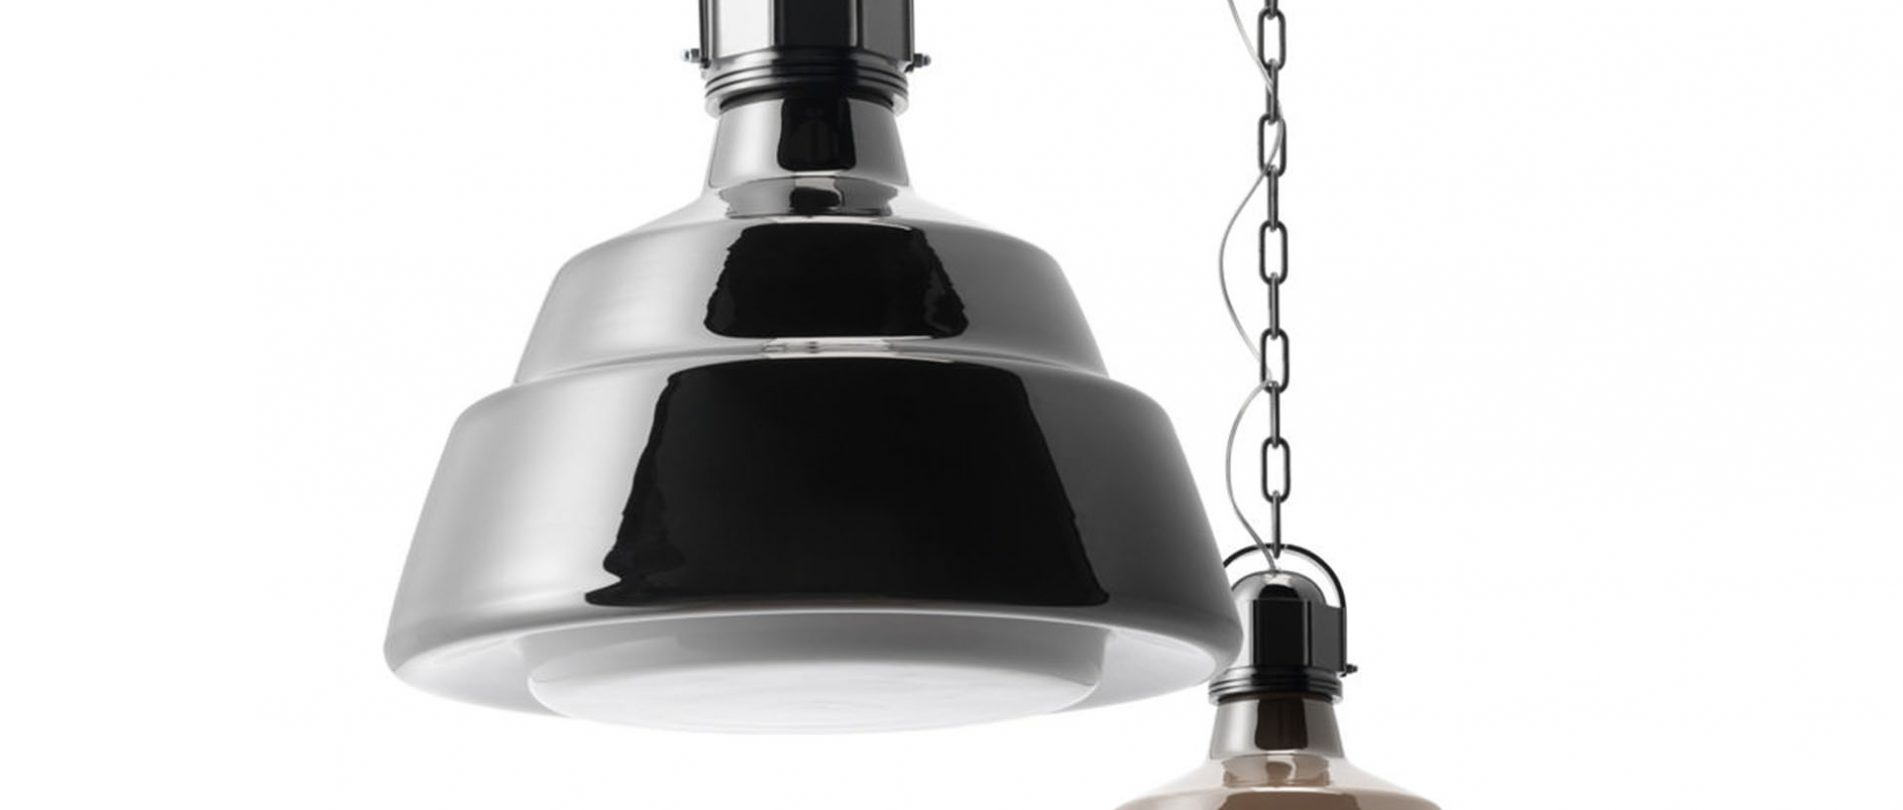 diesel foscarini lighting kitchen